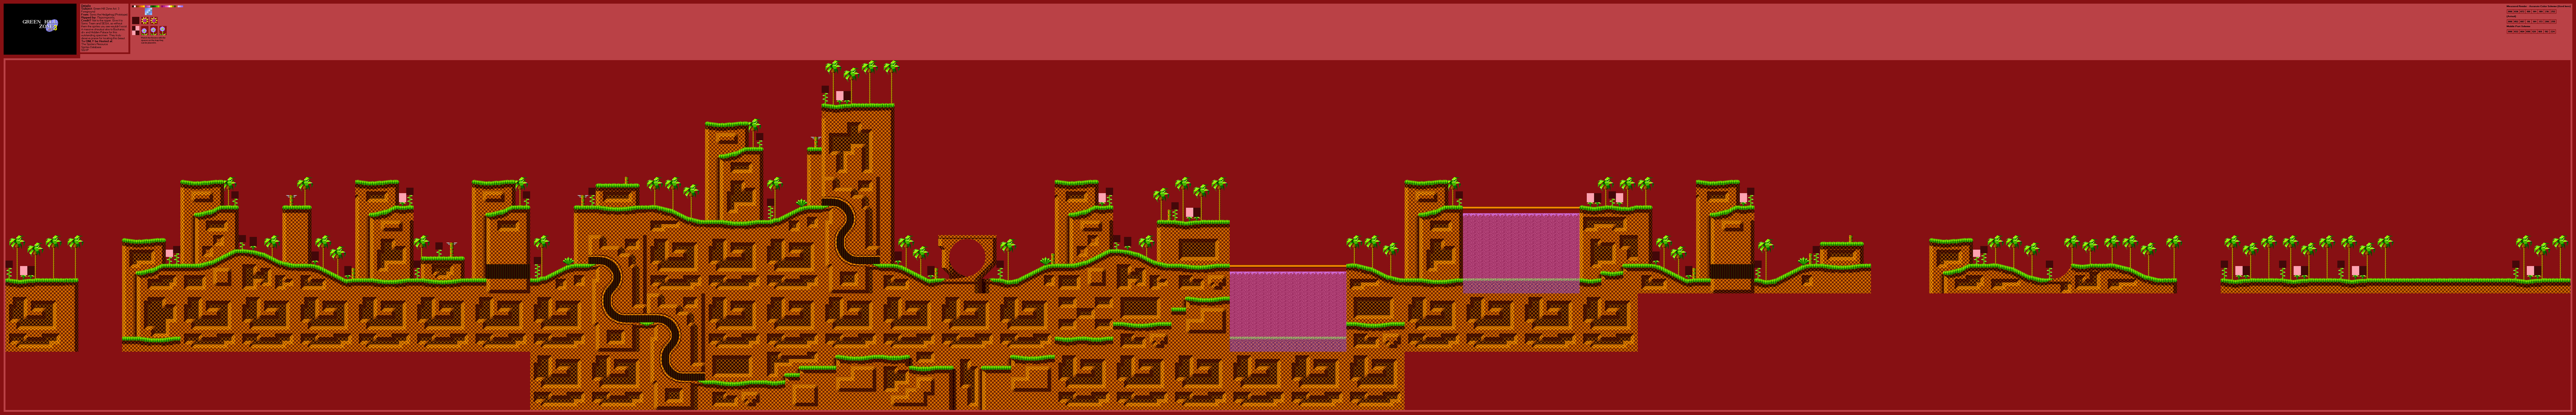 Green Hill Zone Act. 3